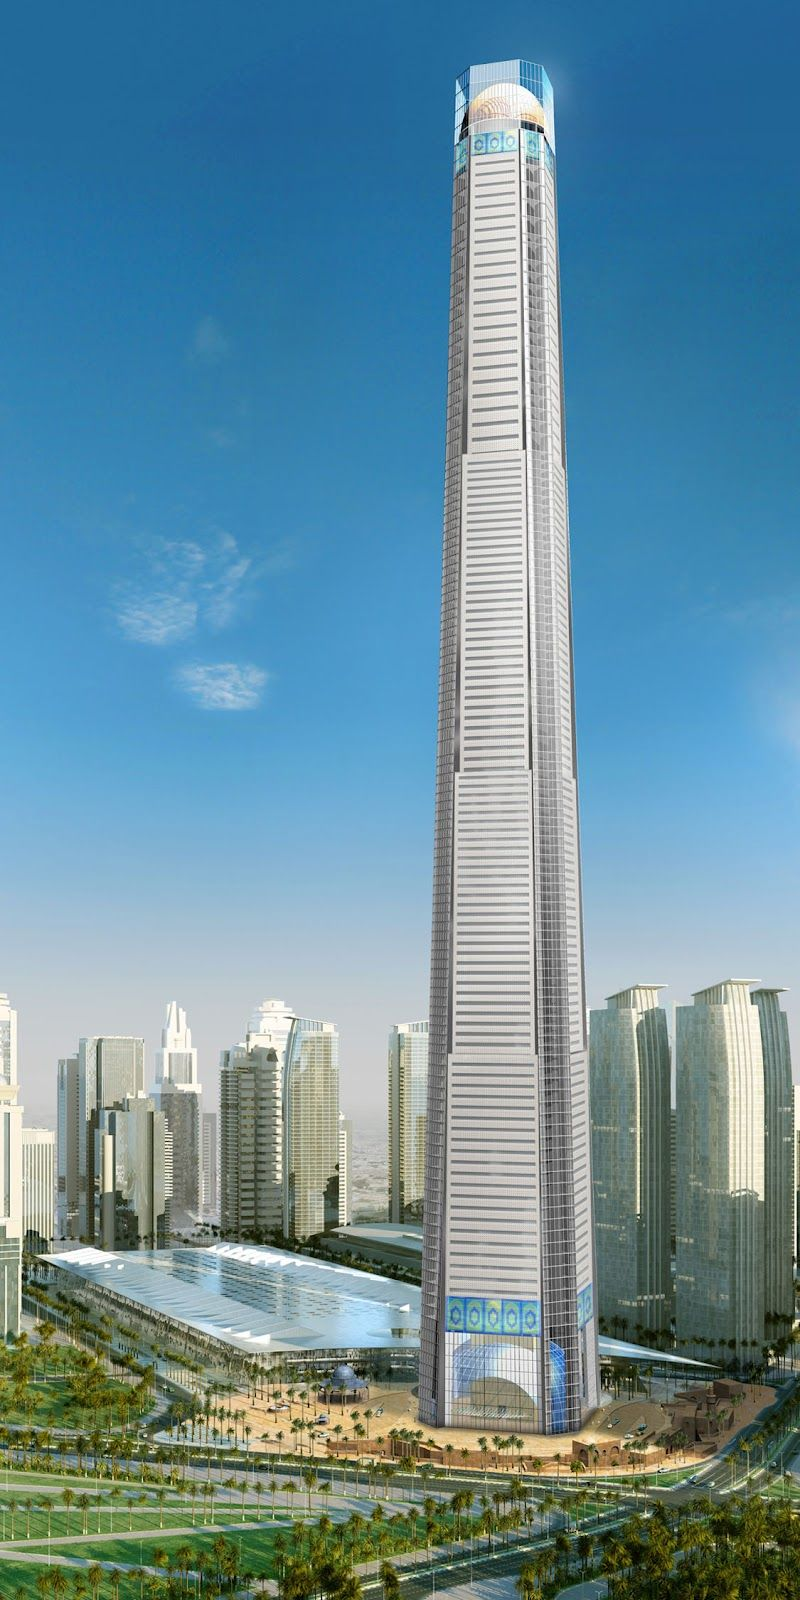 doha tower and convention center 112 flr skyscrapers pinterest architektur geb ude und. Black Bedroom Furniture Sets. Home Design Ideas